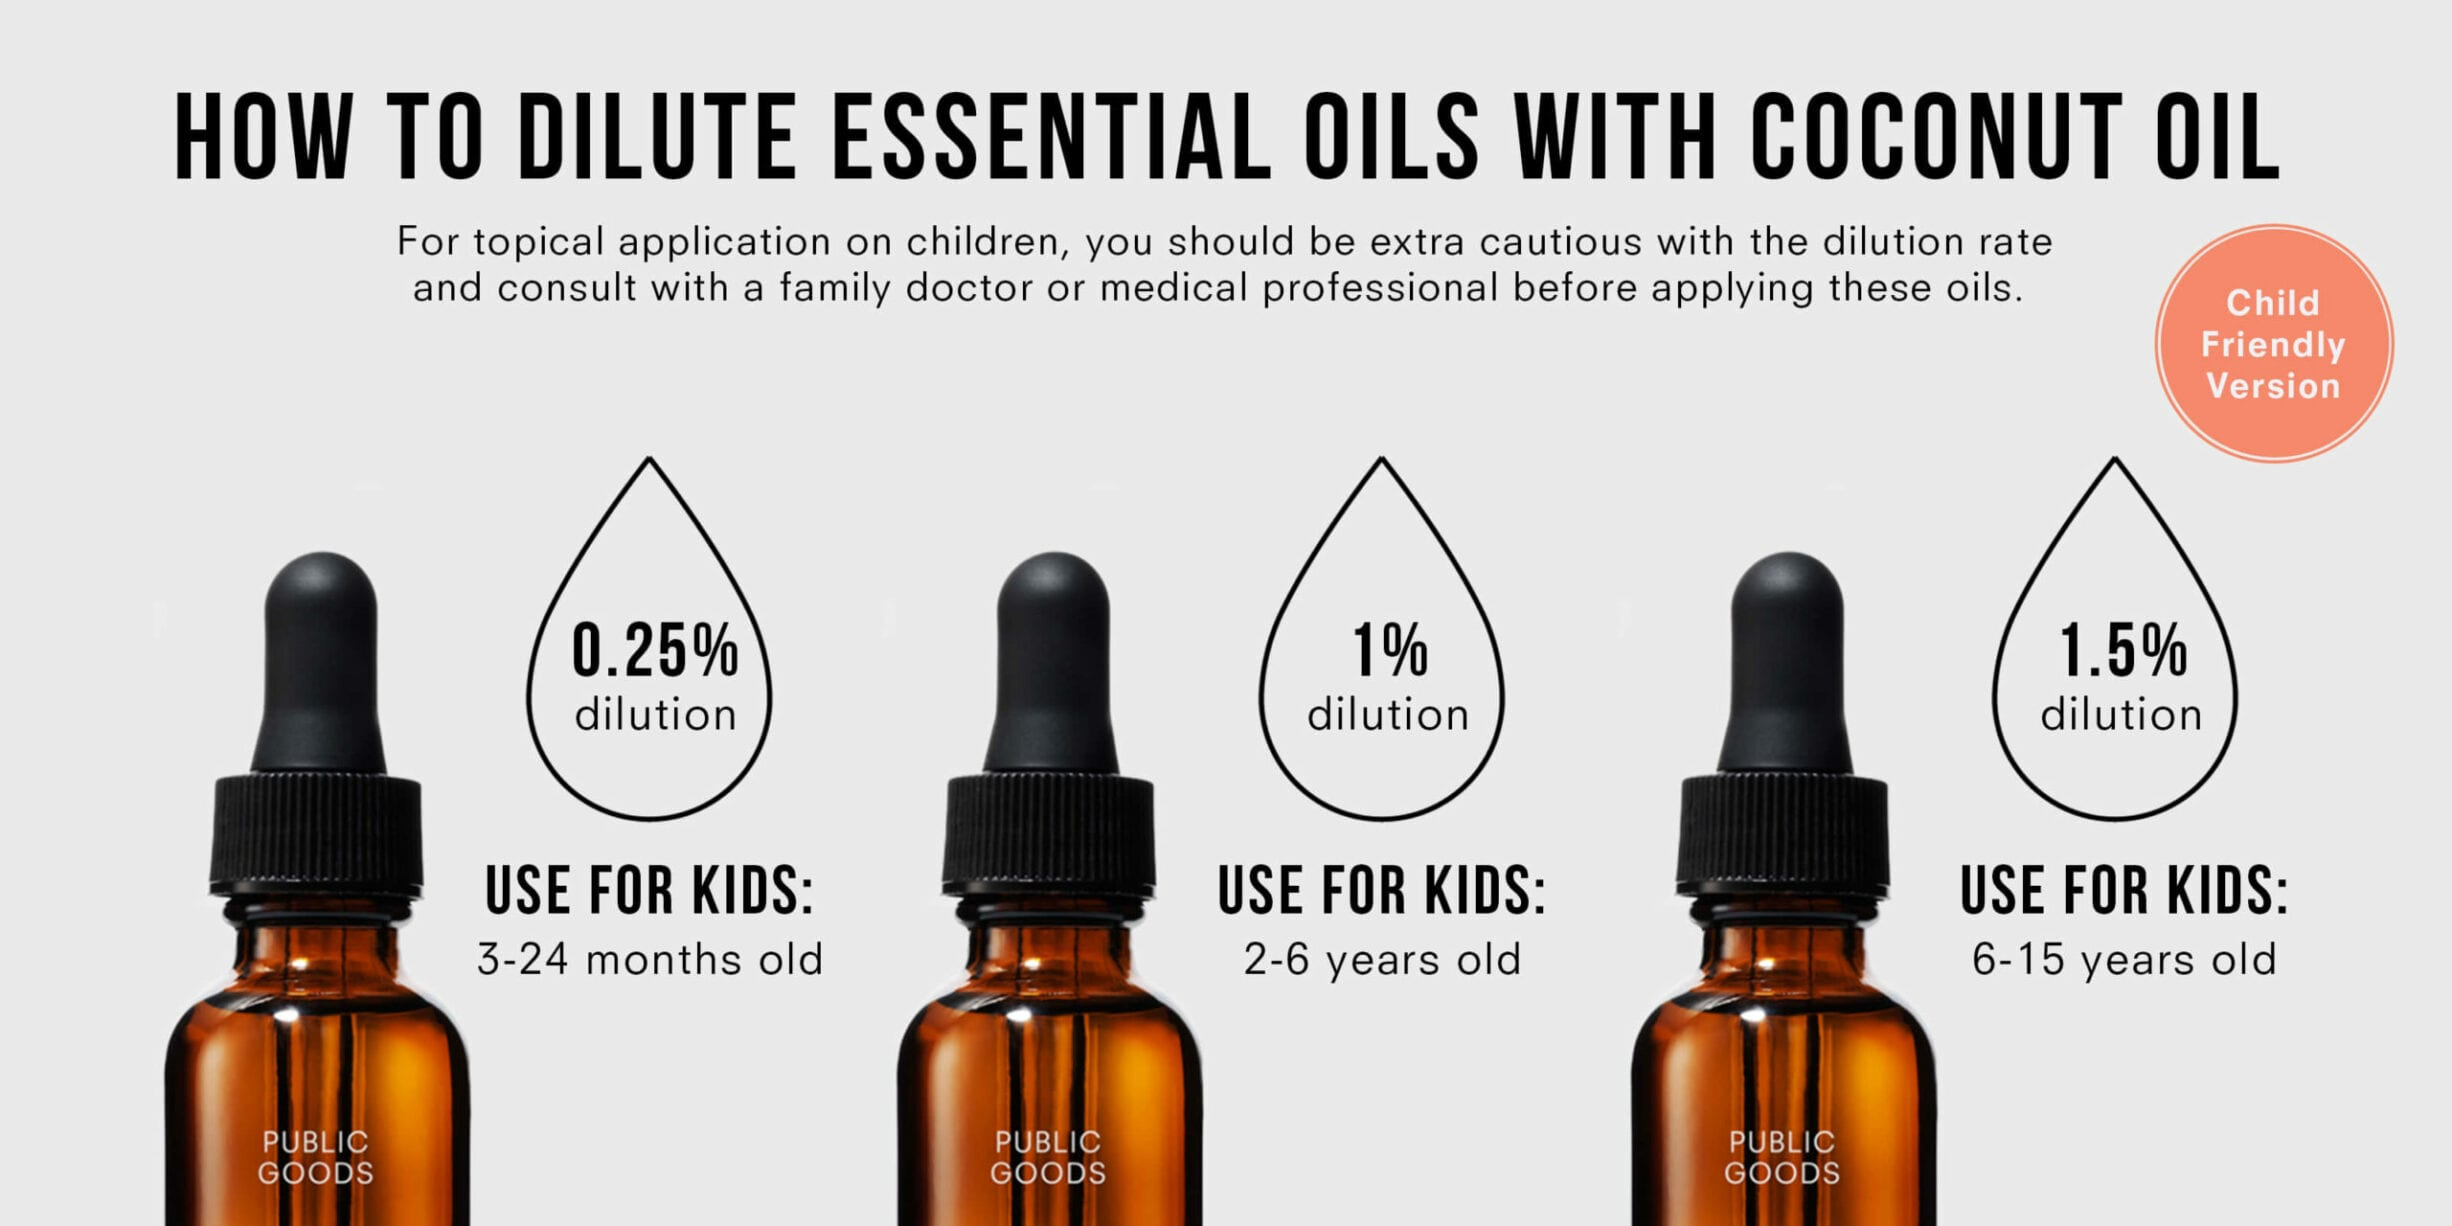 Dilute Essential Oils Coconut Oil for Kids Chart